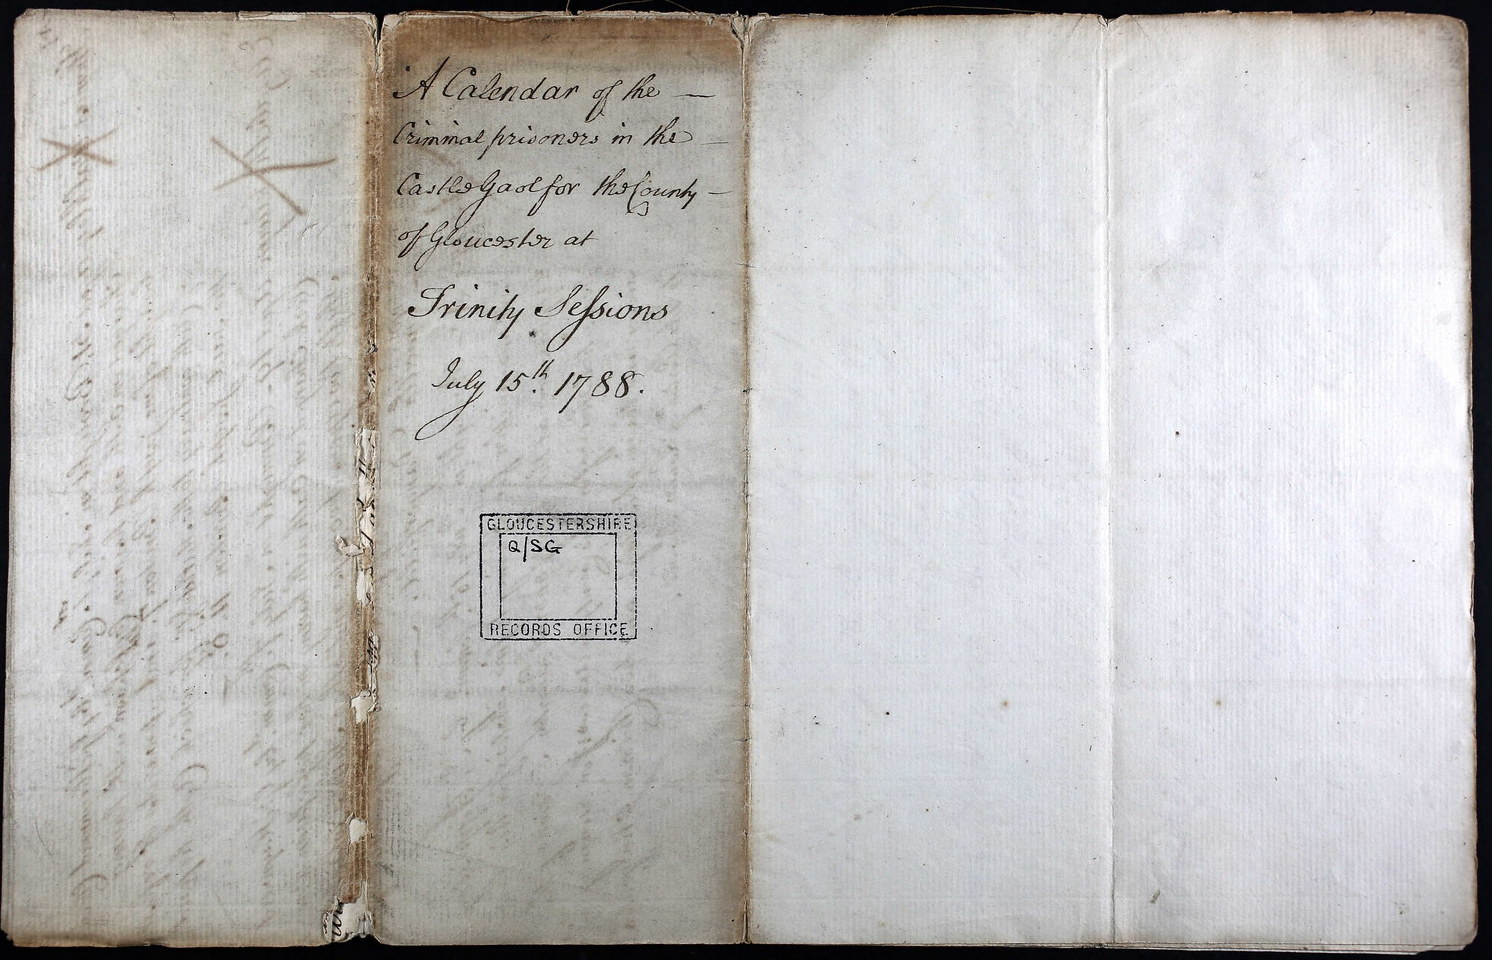 A Calendar of the Criminal prisoners in the Castle Gaol for the county of Gloucester at Trinity Sessions July 15th 1788.